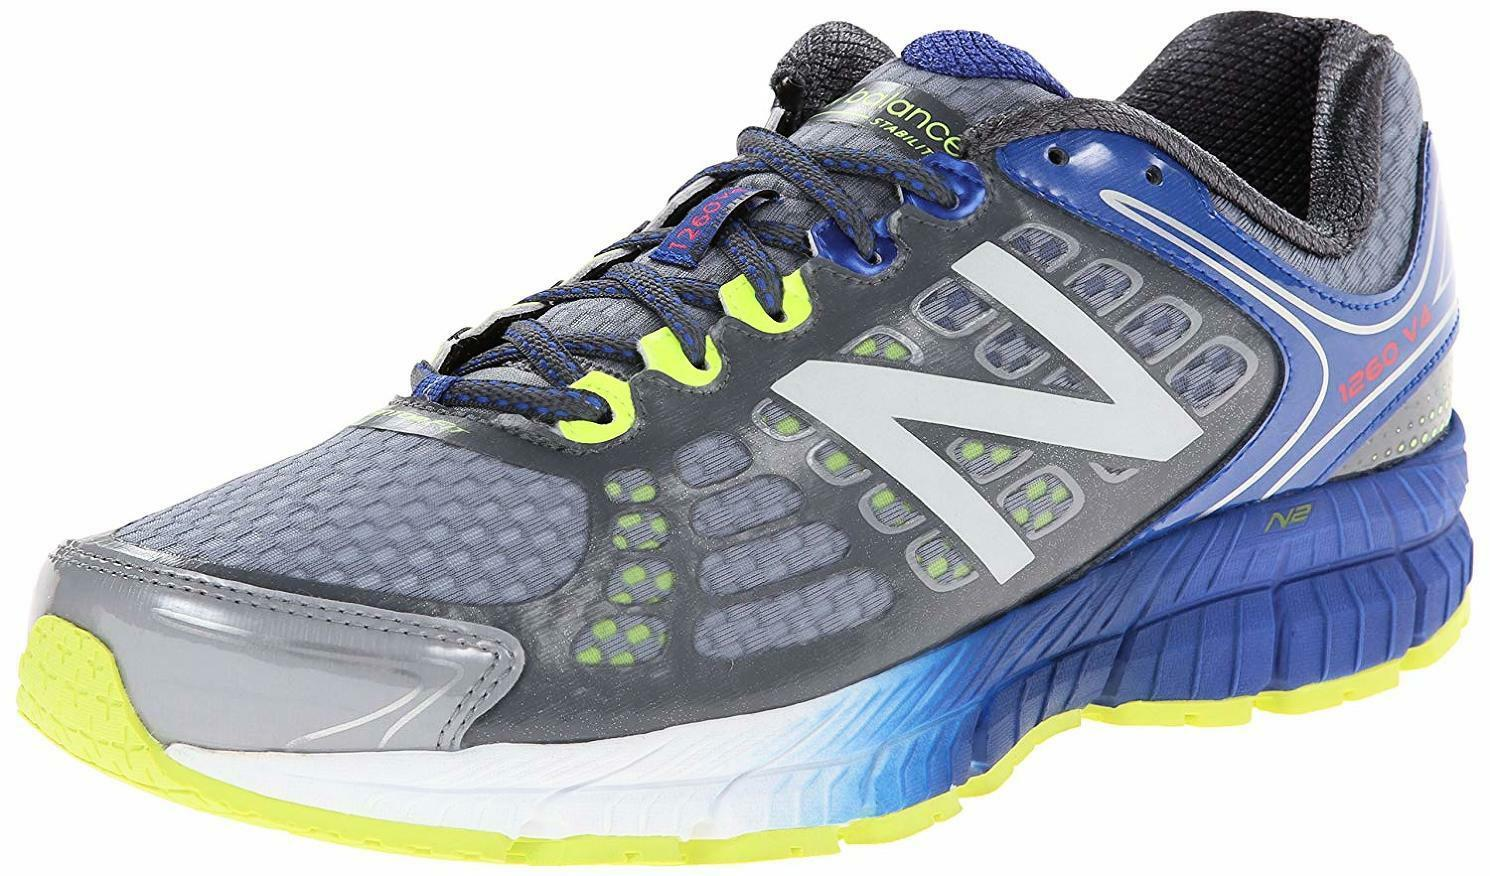 New Balance Men's M1260v4 NBX Running zapatos - Choose SZ Color